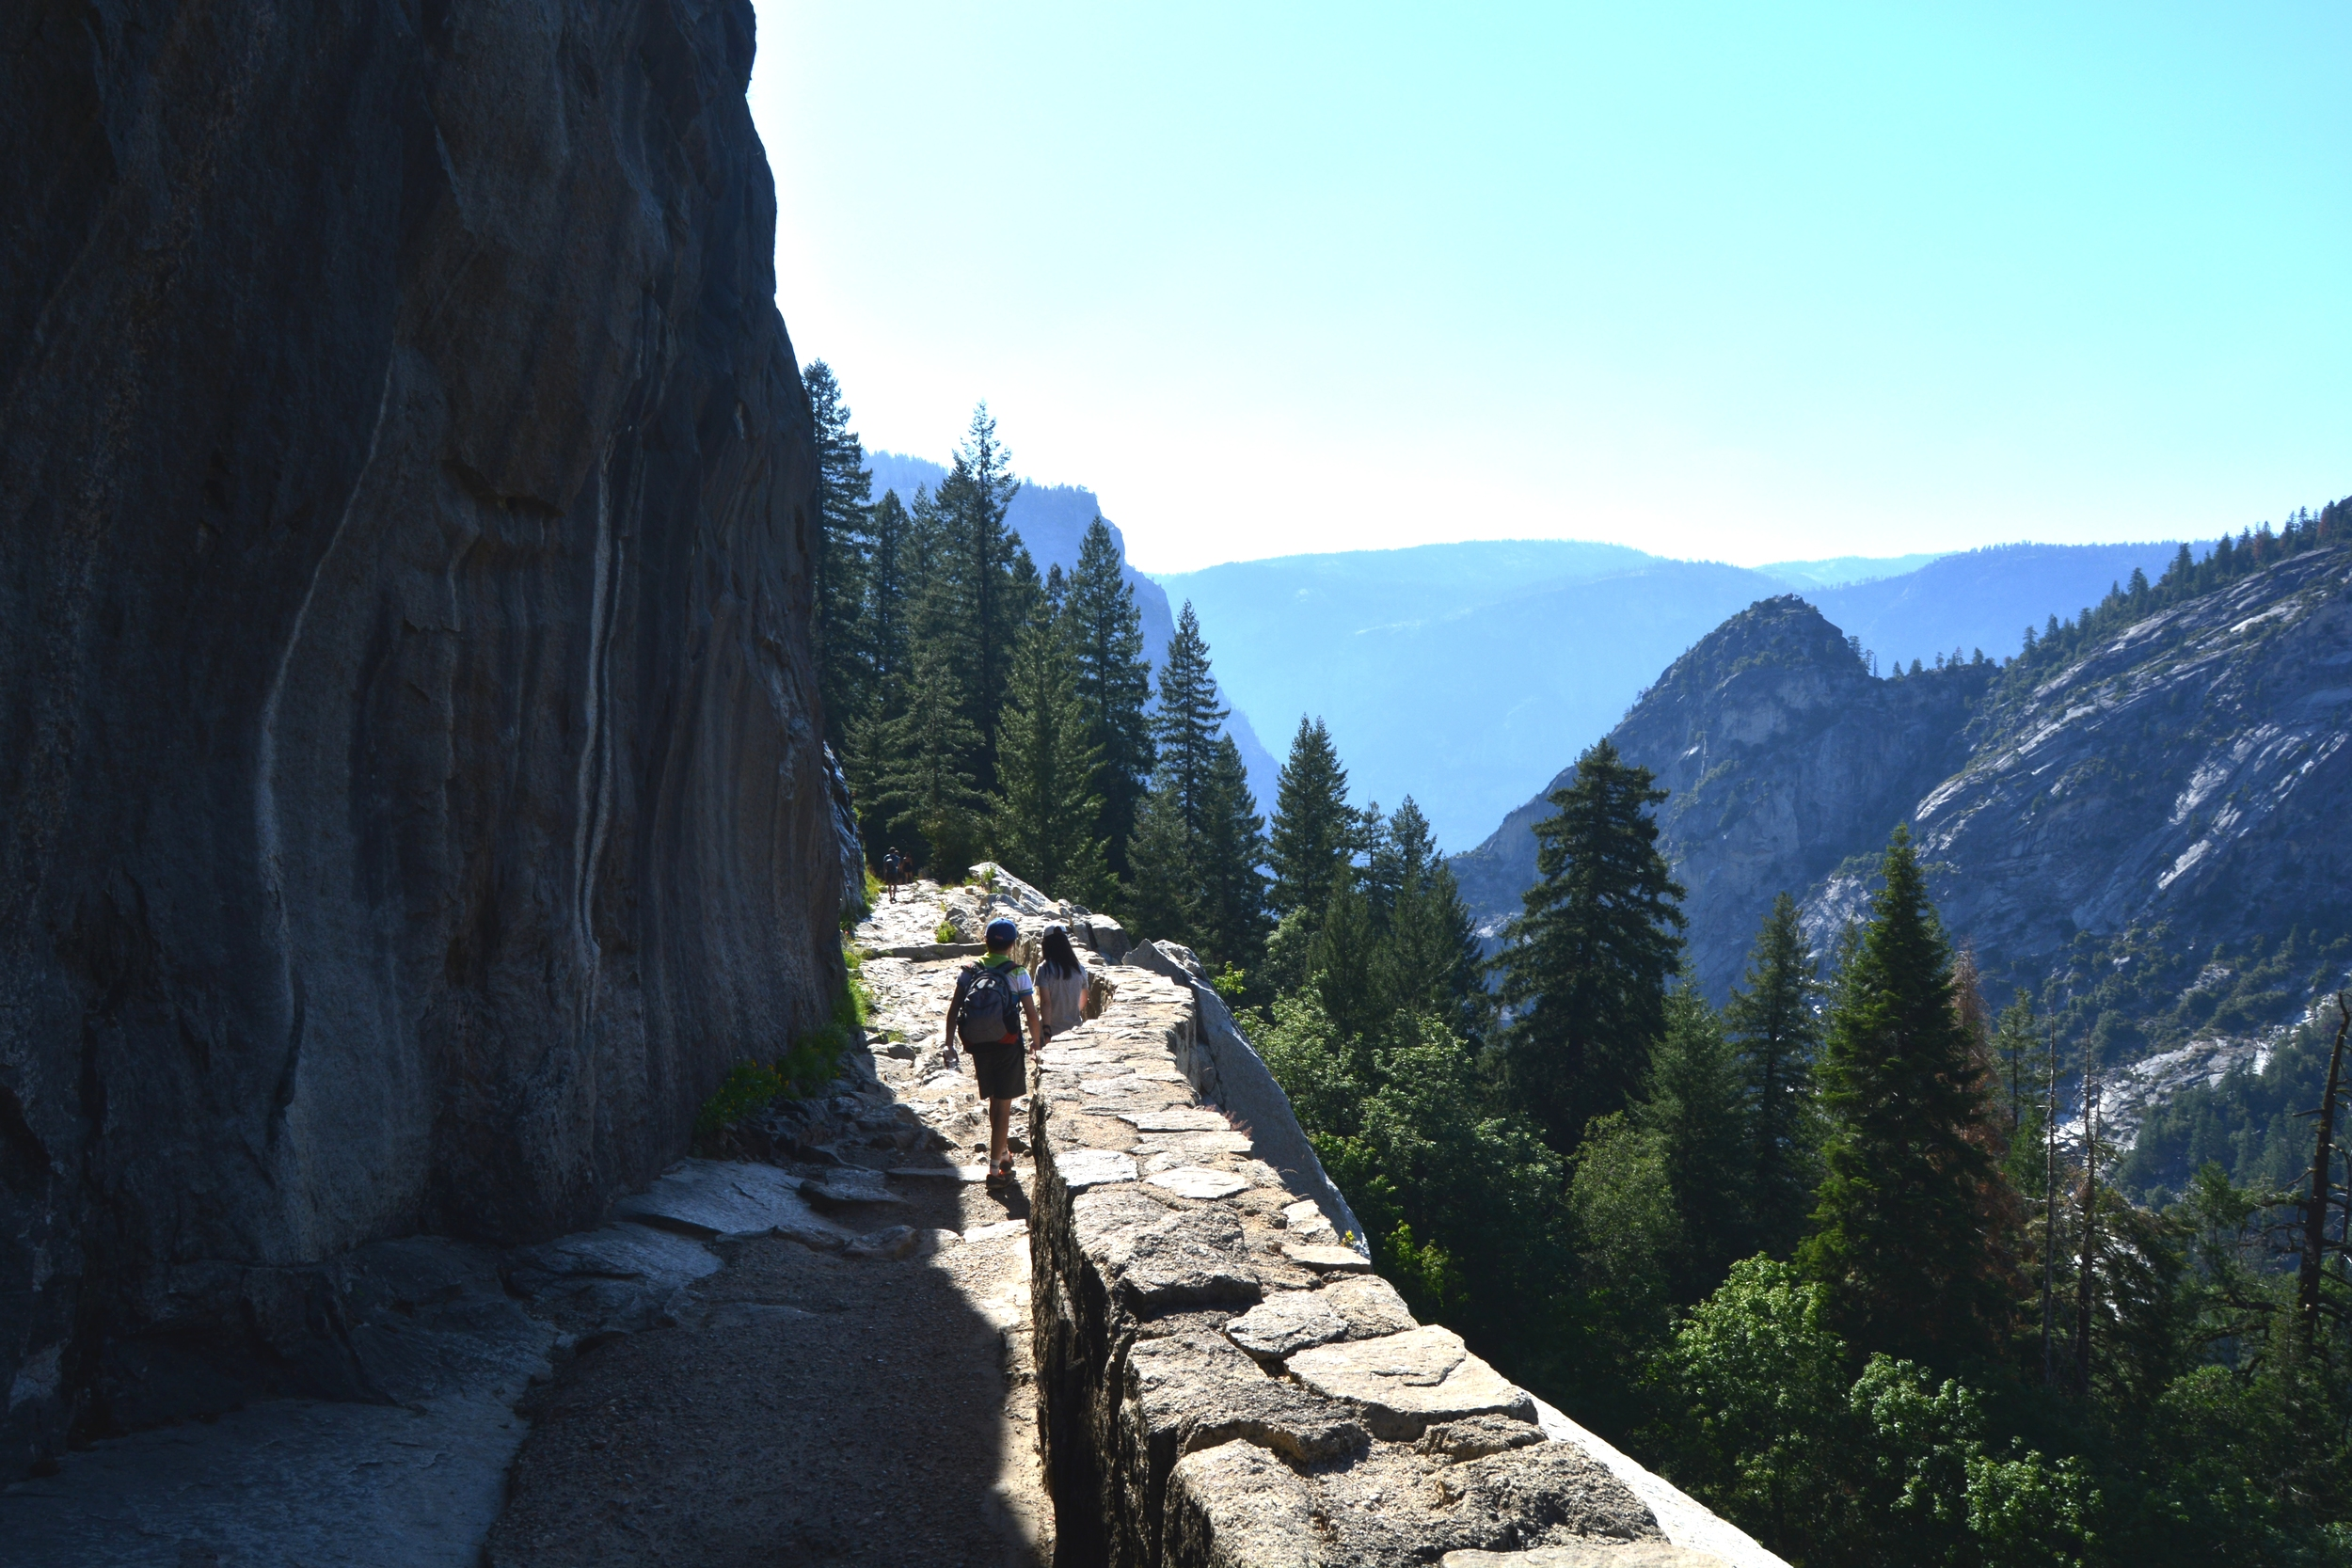 Our cliff-side walk down the John Muir Trail